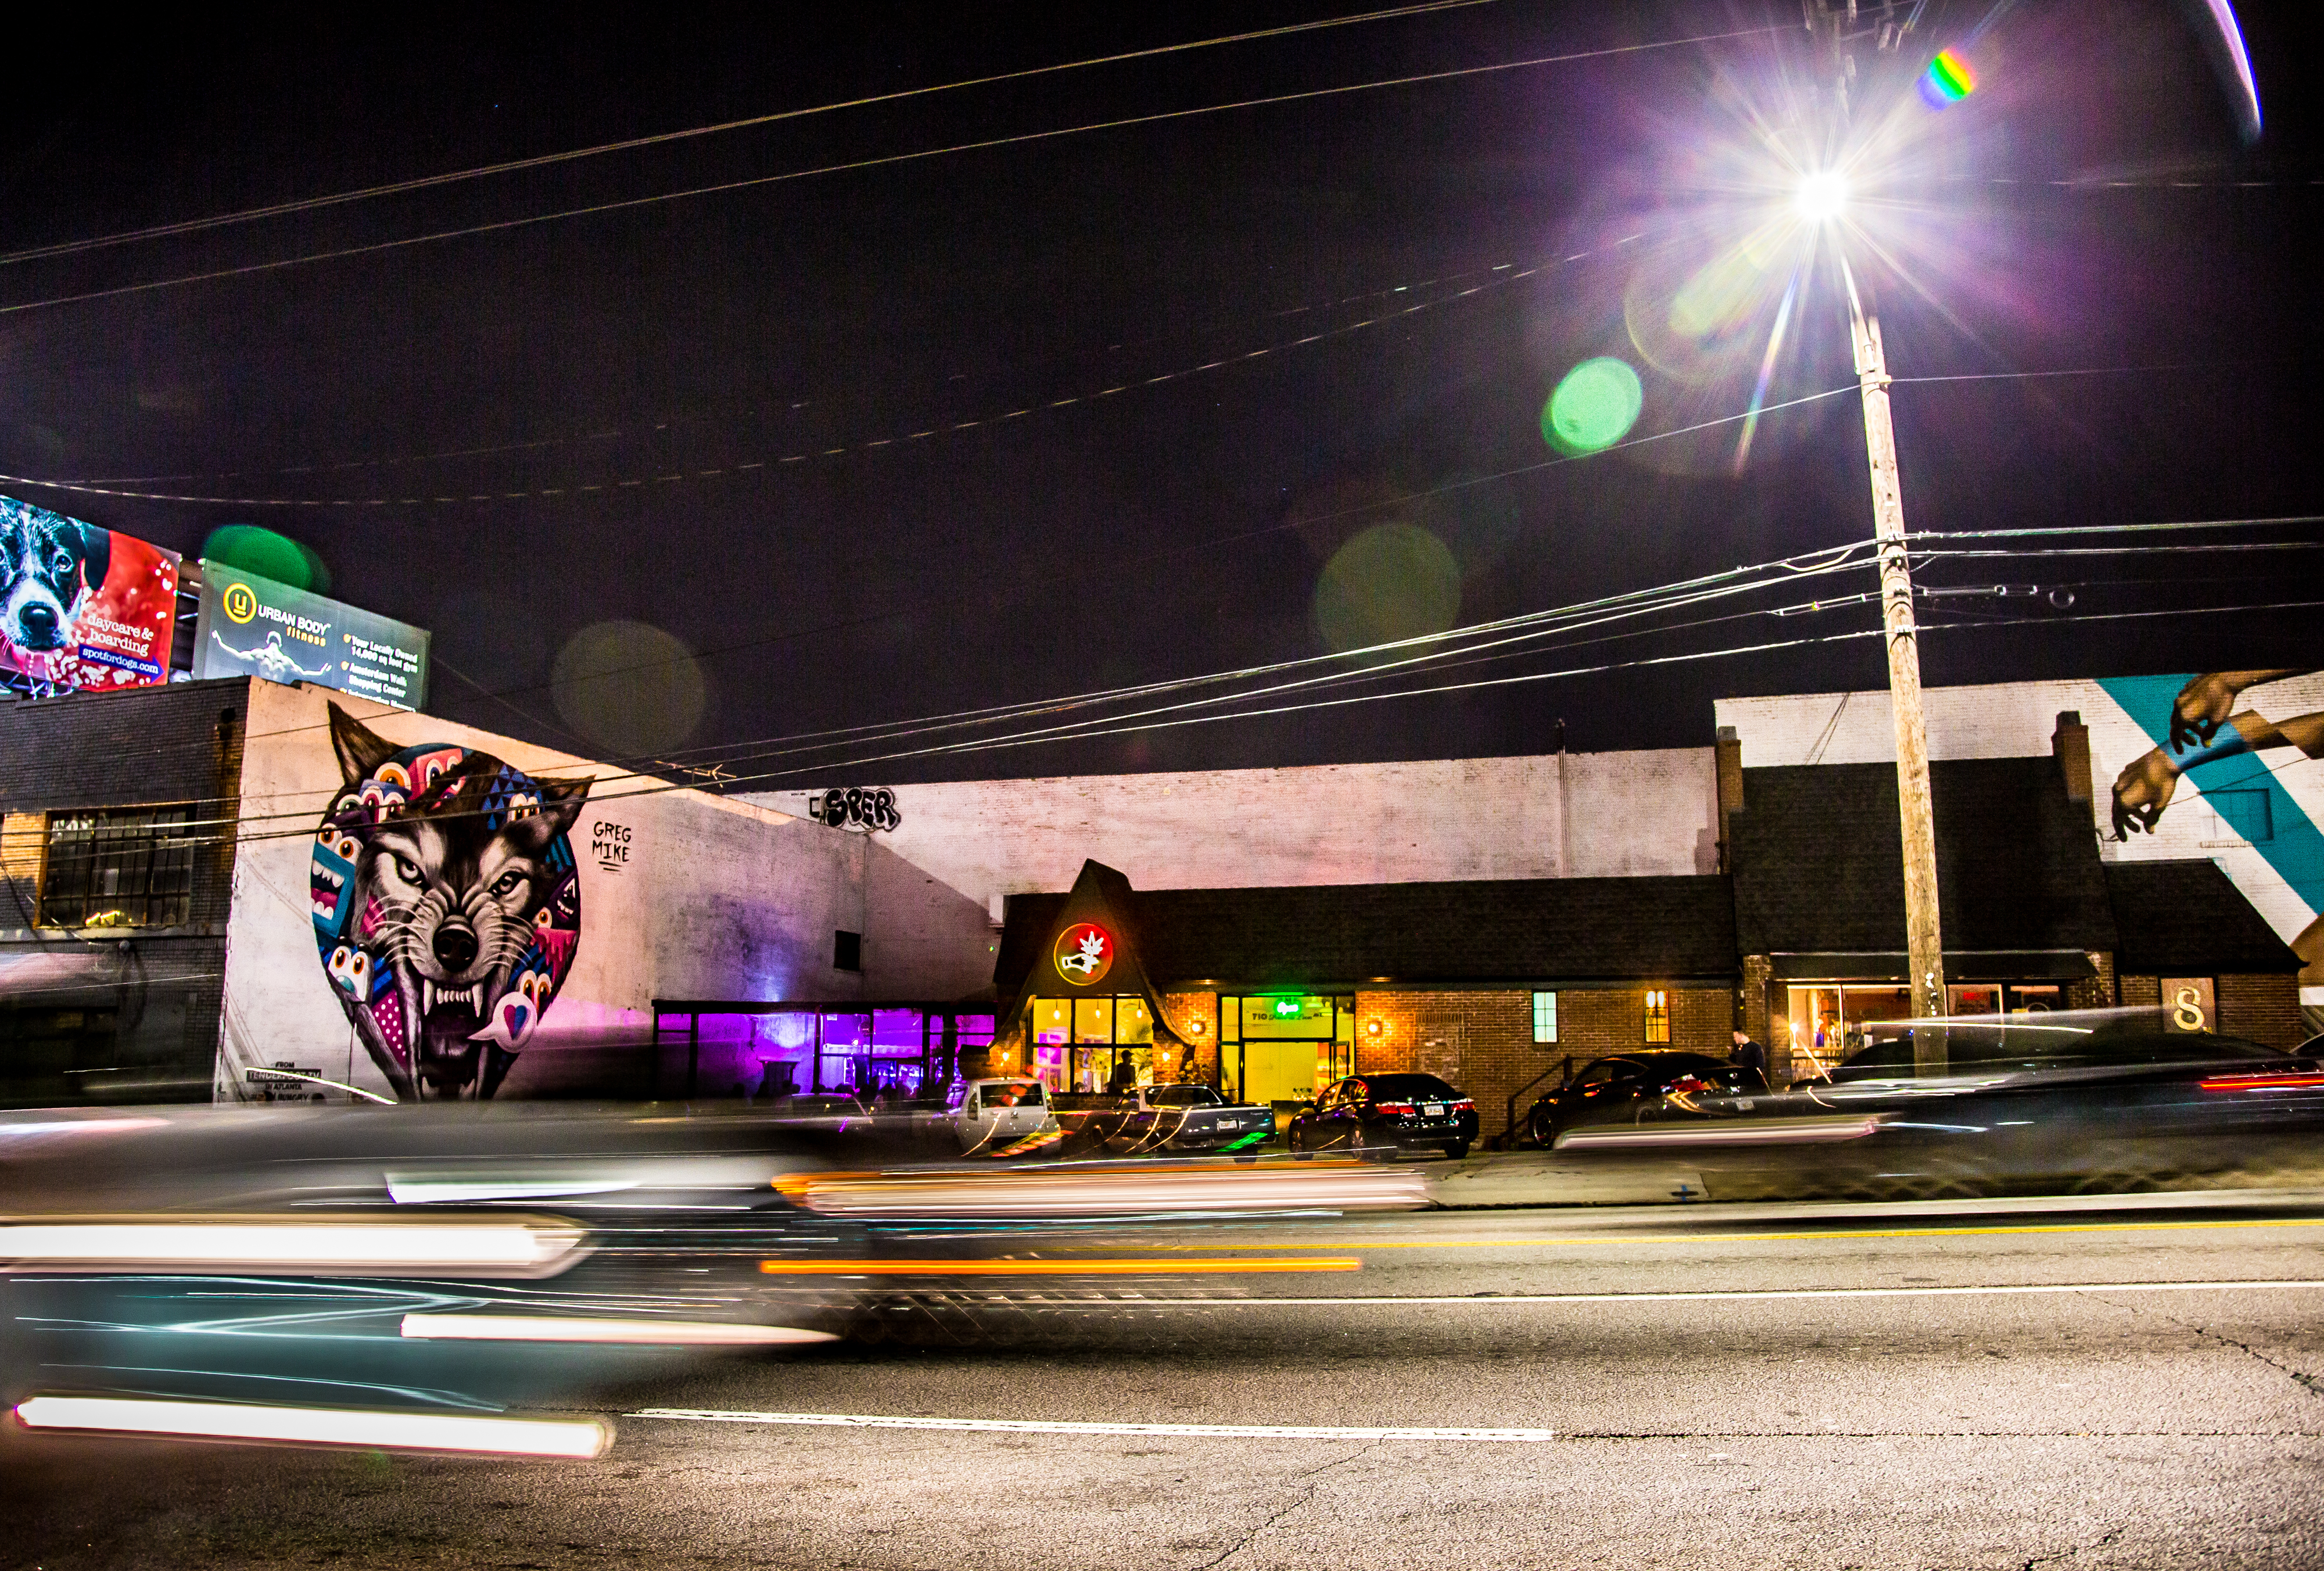 A nighttime shot of restaurant and bar 8ARM located on Ponce de Leon Avenue in Atlanta with cars rushing by